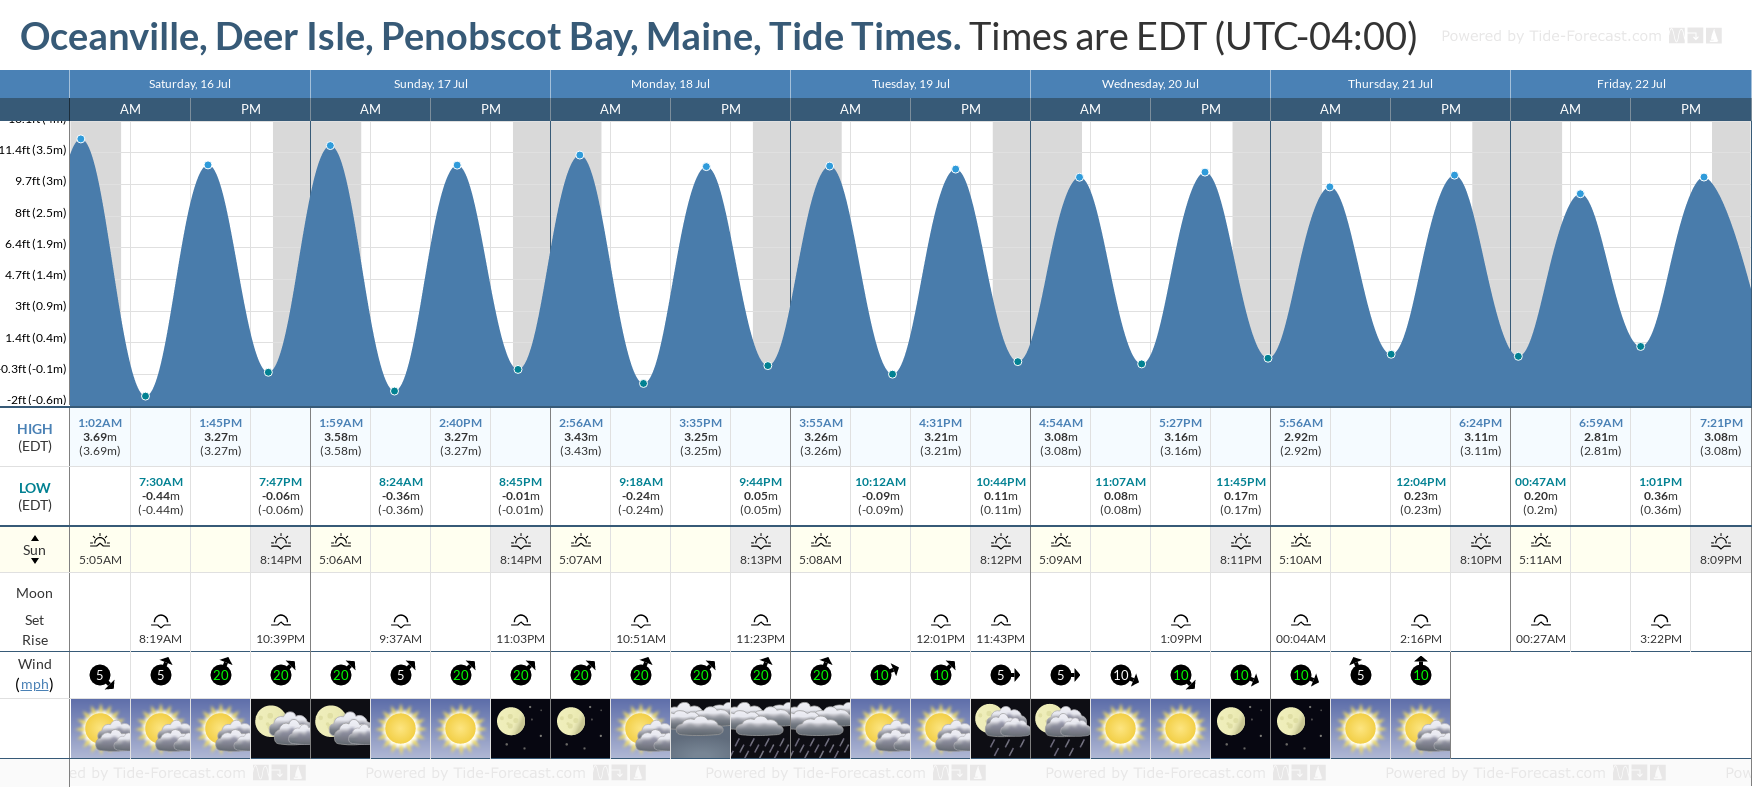 Oceanville, Deer Isle, Penobscot Bay, Maine Tide Chart including high and low tide tide times for the next 7 days